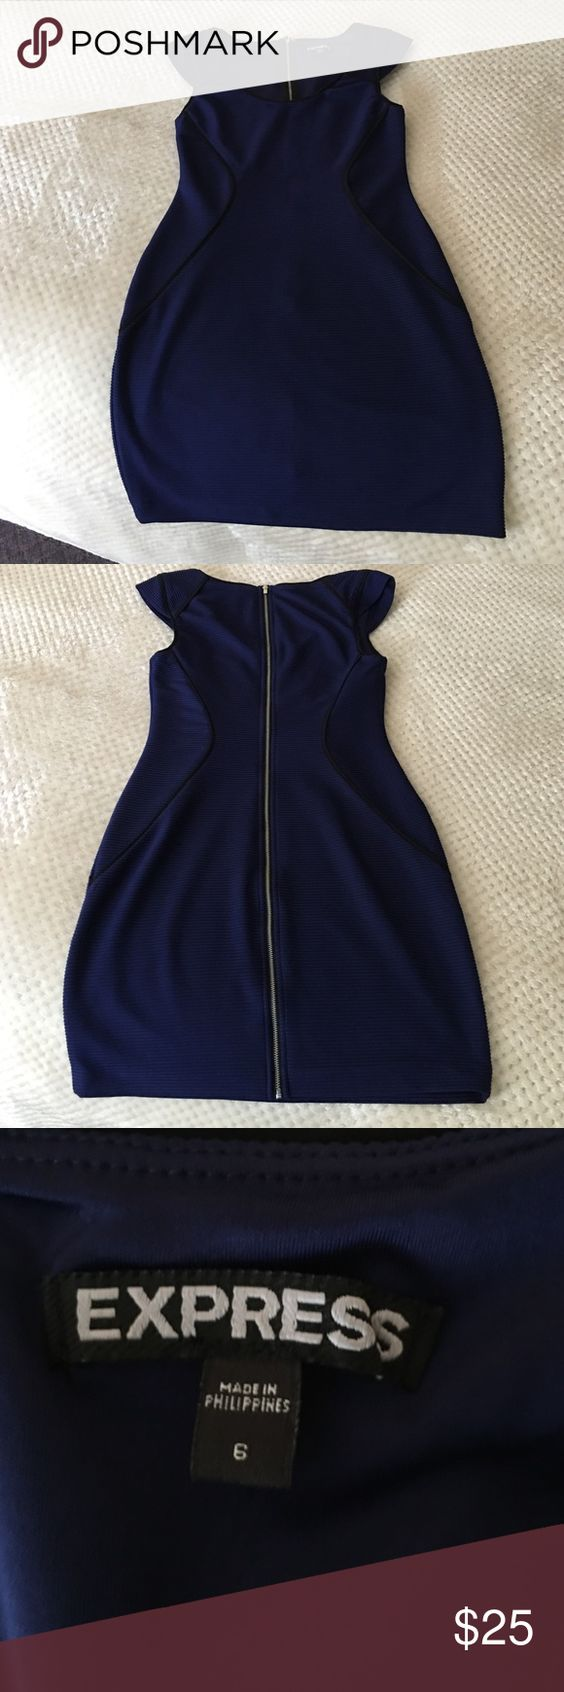 NWOT Express Dress Gorgeous blue dress with silver zipper detail on the back. Never worn. Express Dresses